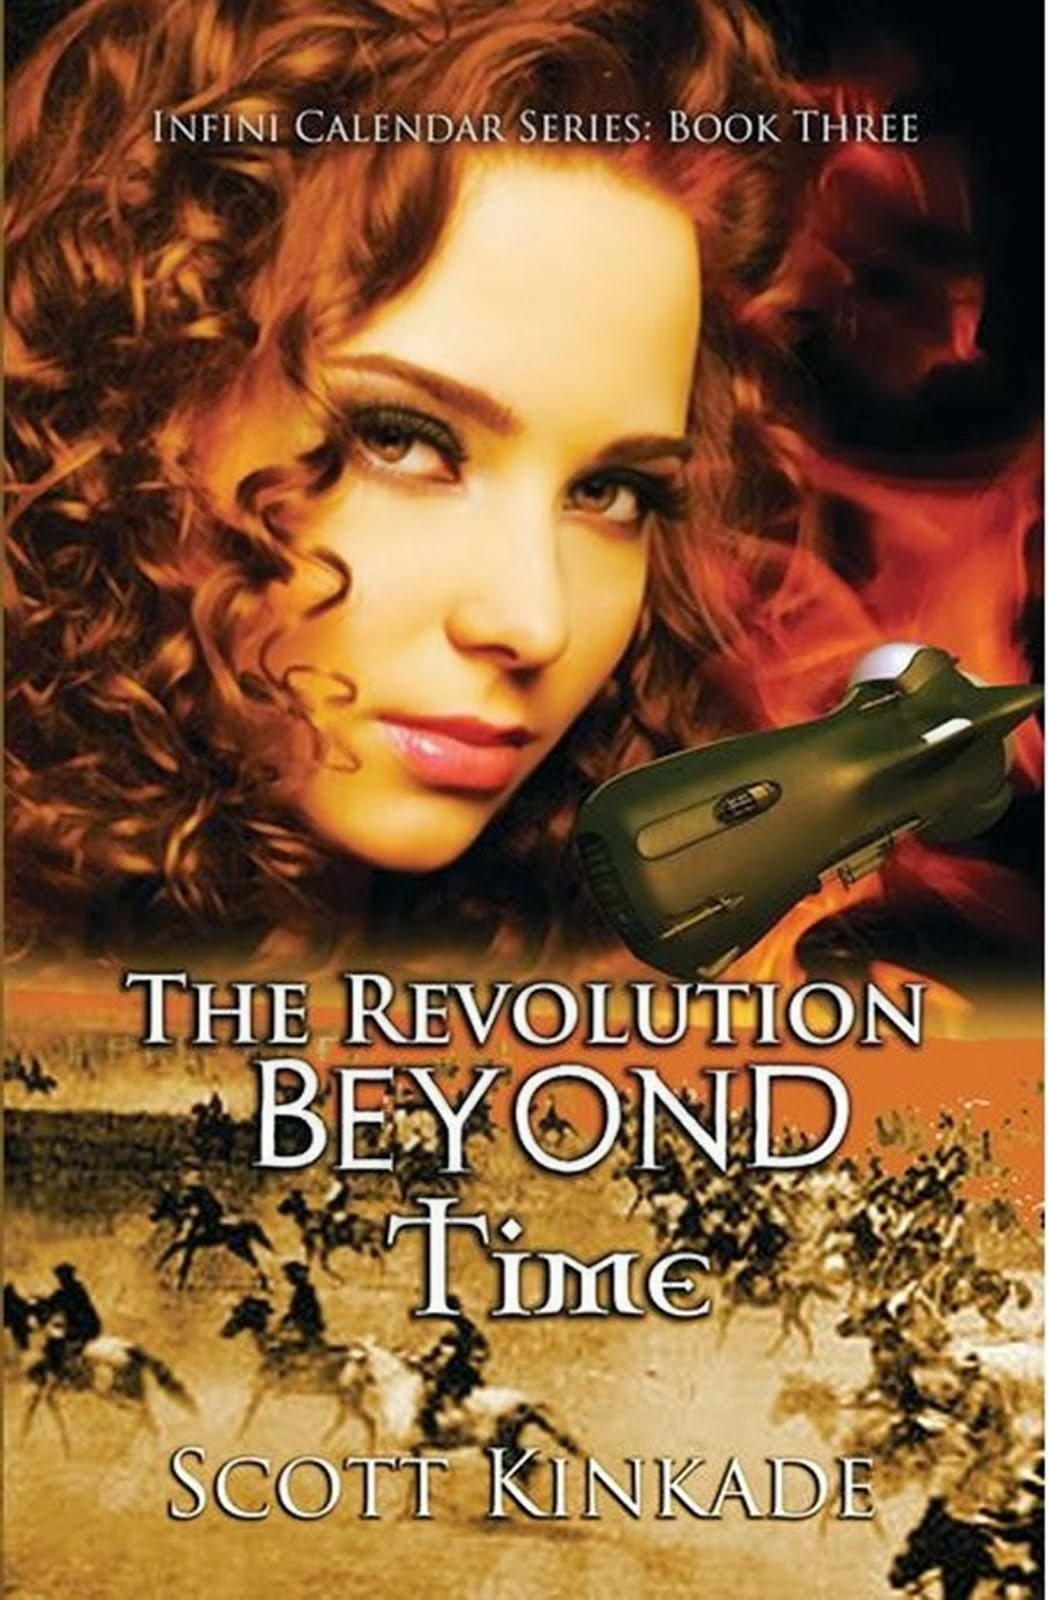 The Revolution Beyond Time